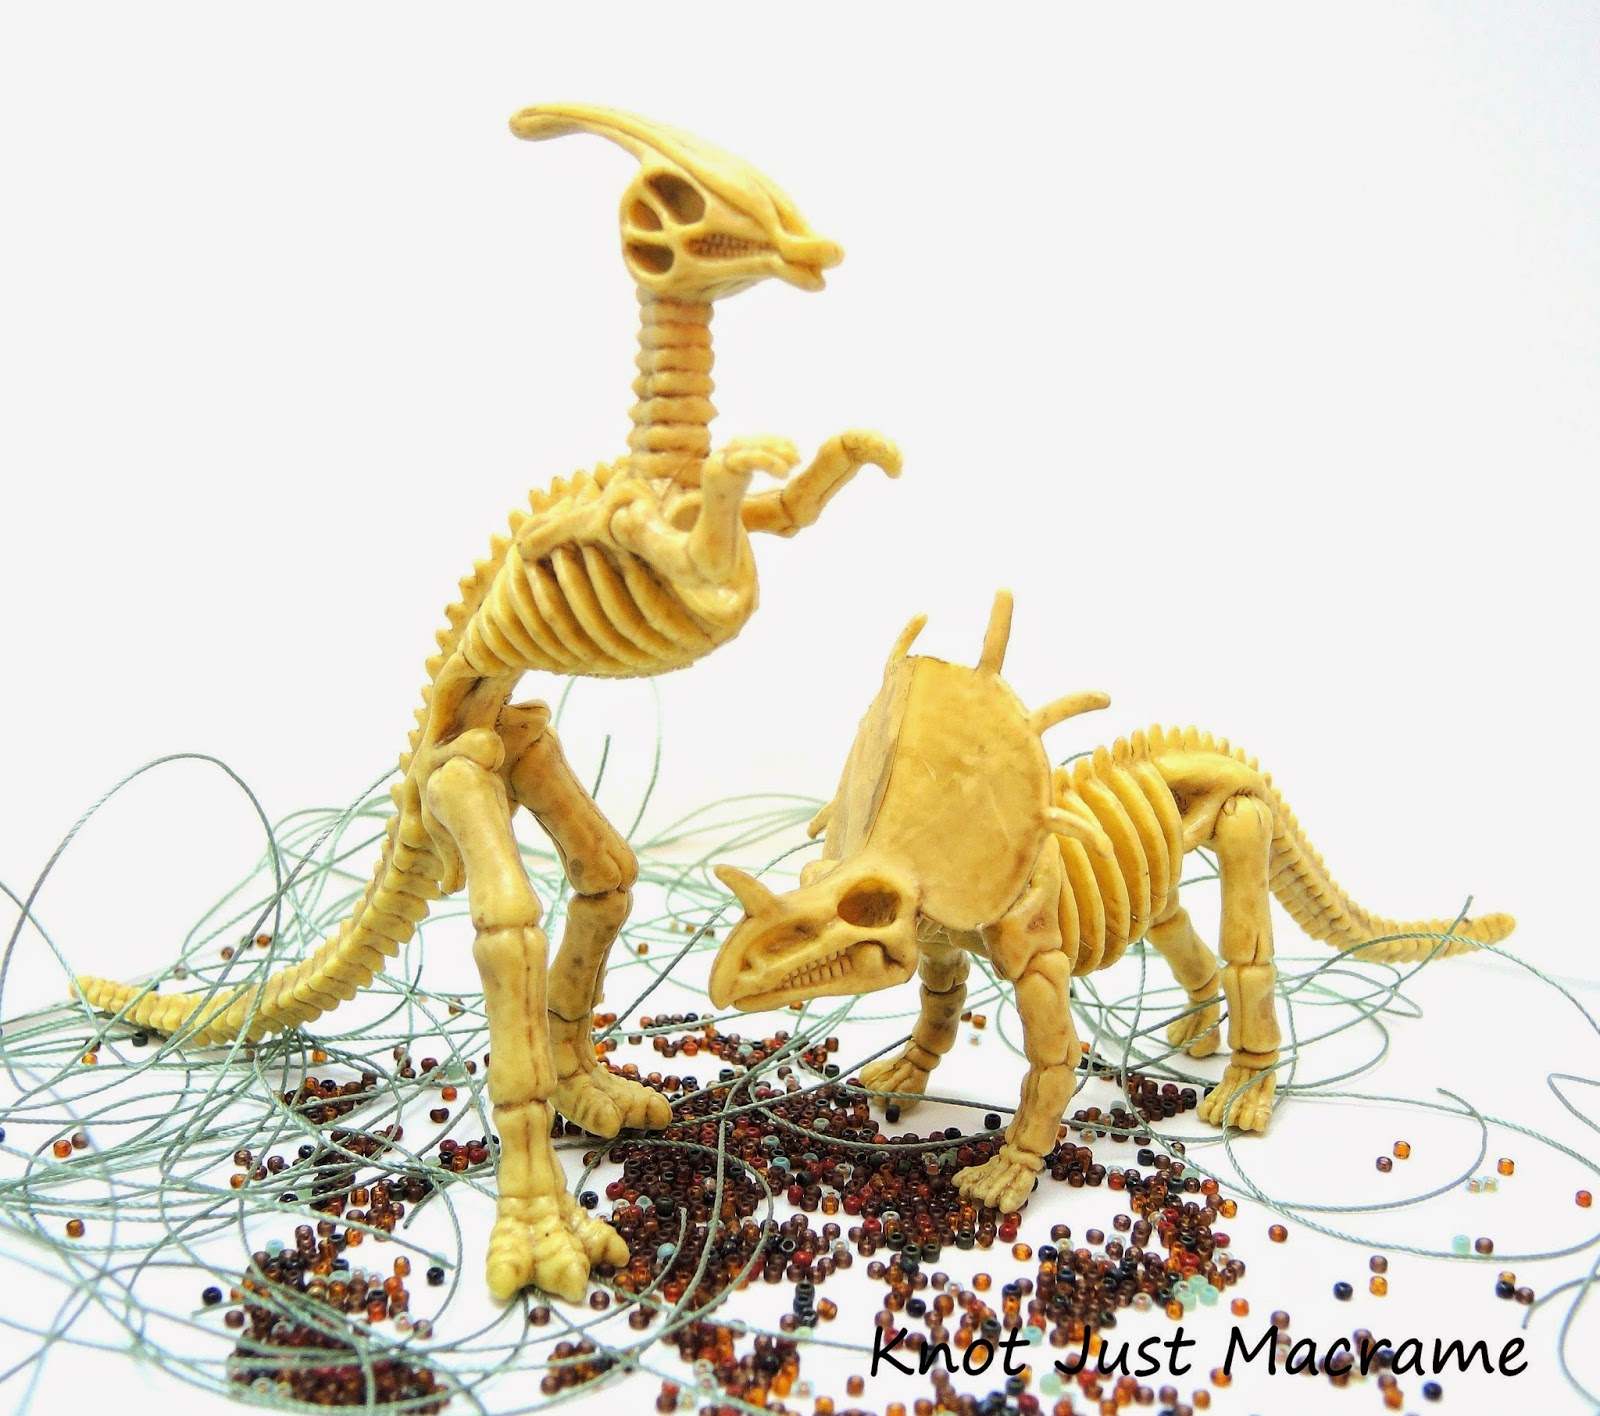 Dinosaur skeleton models messing about in beads and cord.